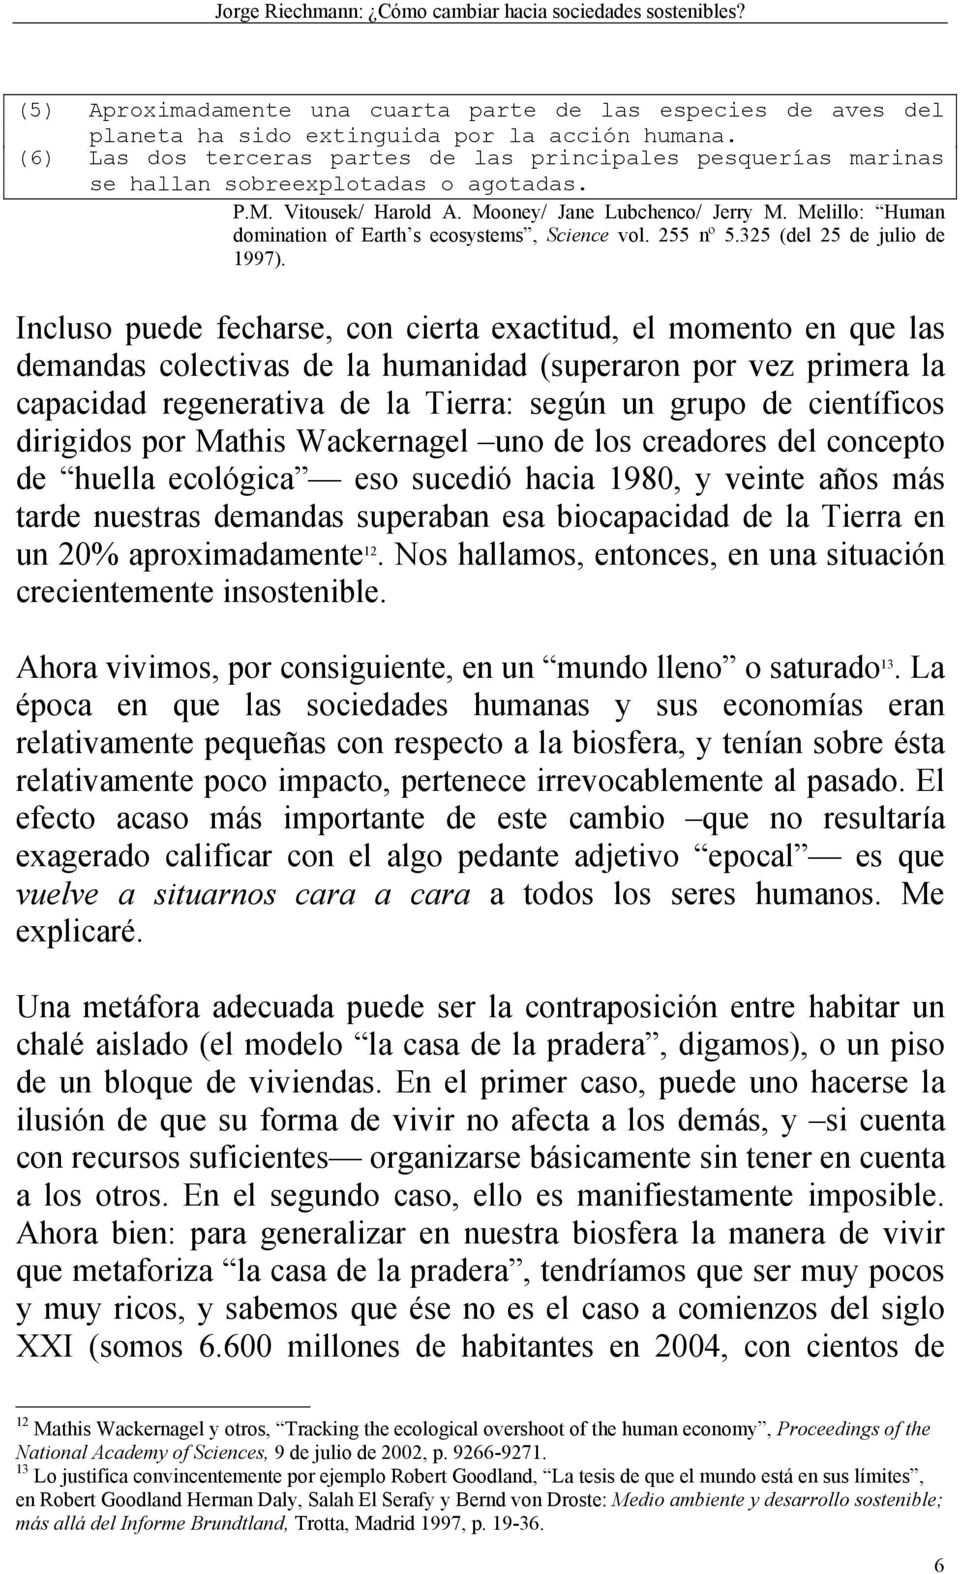 Melillo: Human domination of Earth s ecosystems, Science vol. 255 nº 5.325 (del 25 de julio de 1997).